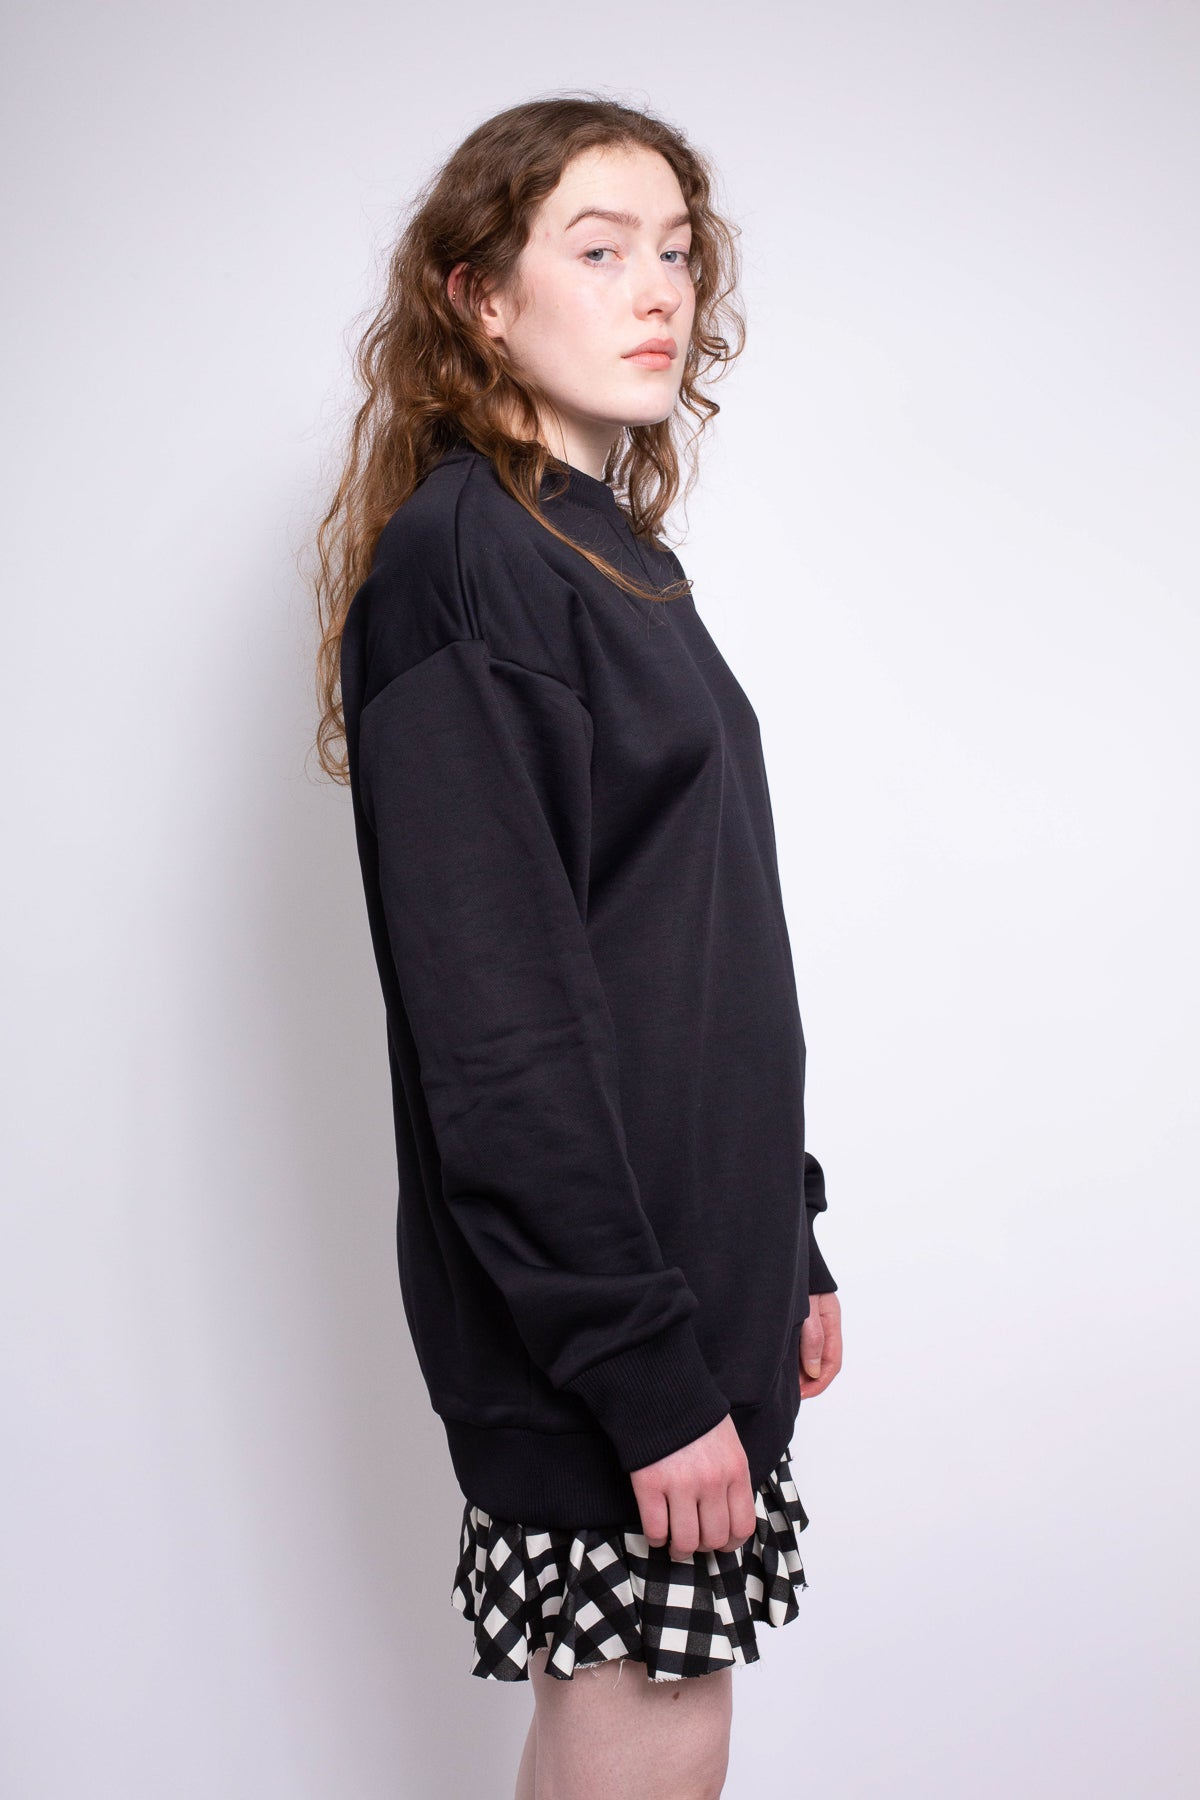 BLACK OVERSIZED SWEATSHIRT - marques-almeida-dev